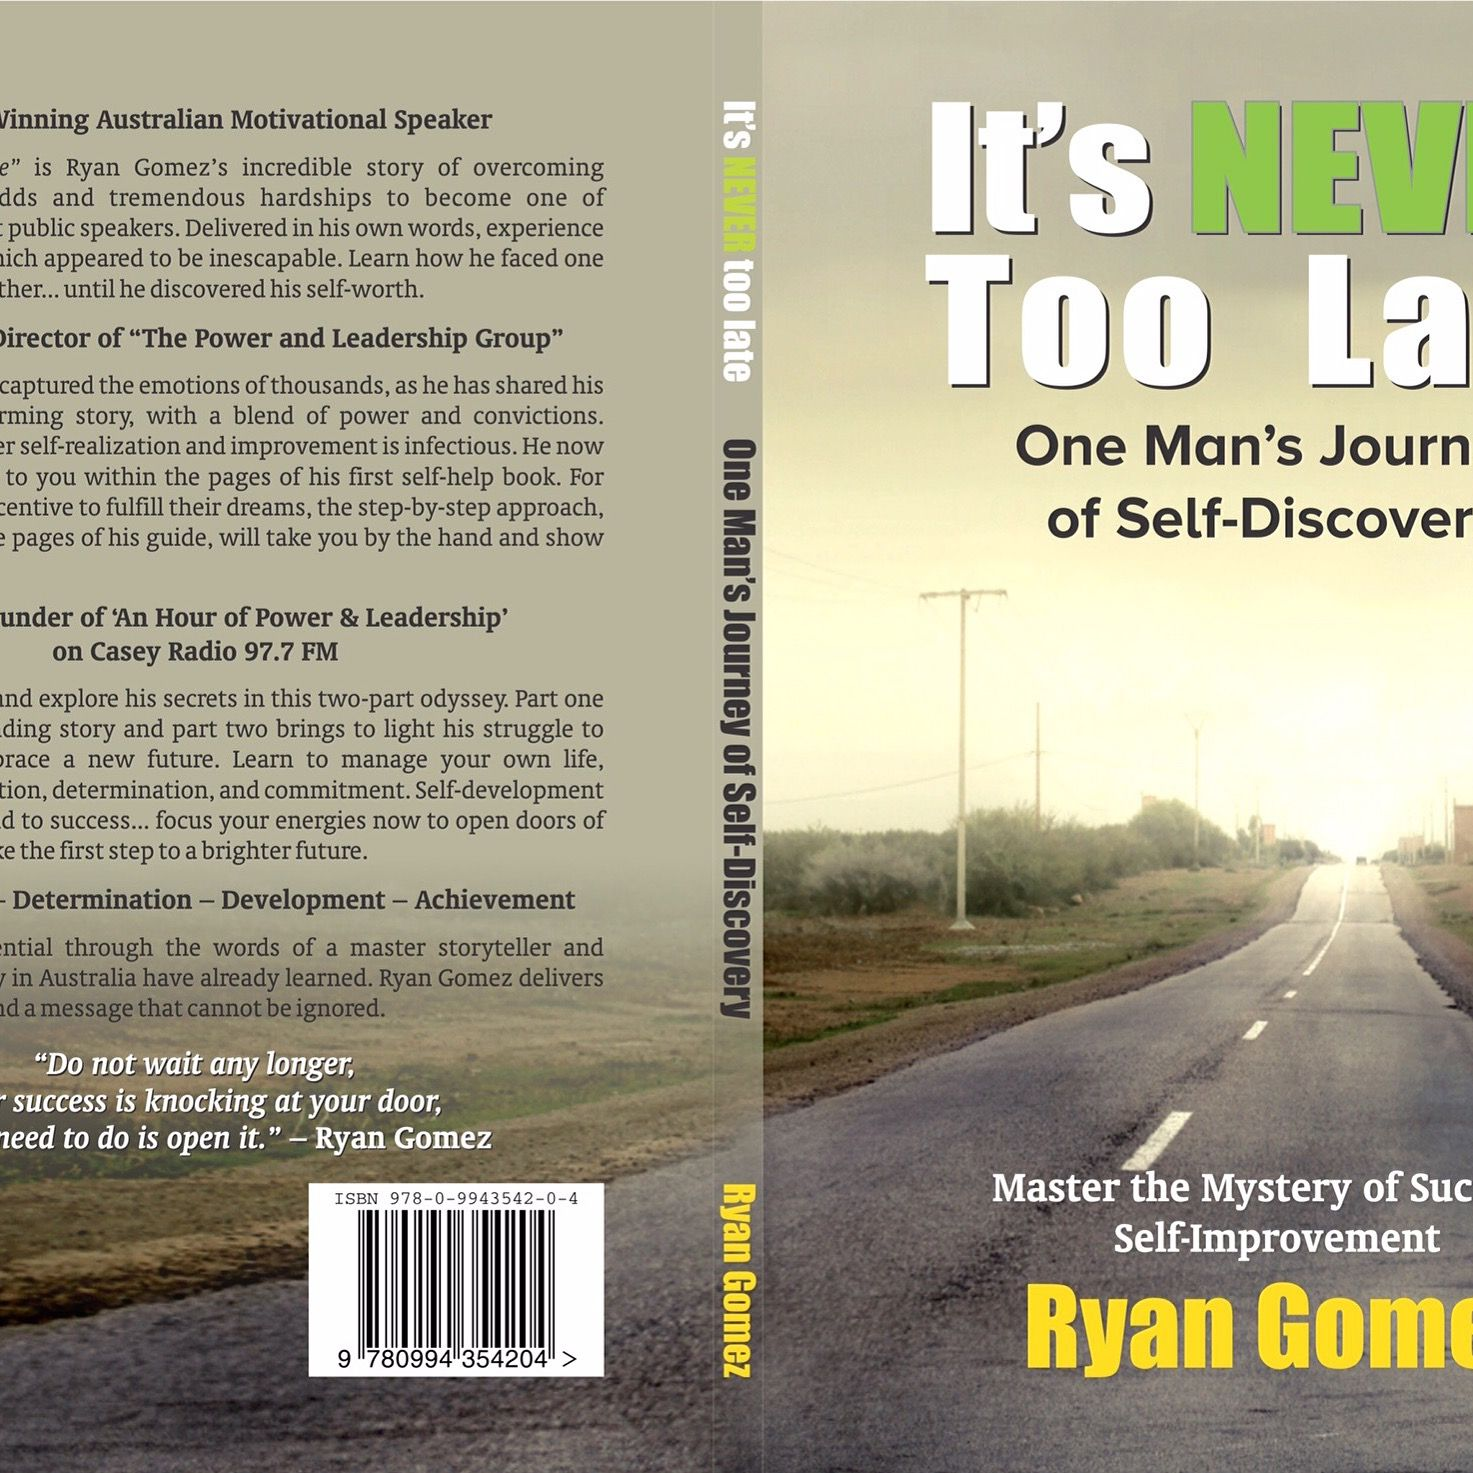 """Warren Frehse Career Development Strategist 